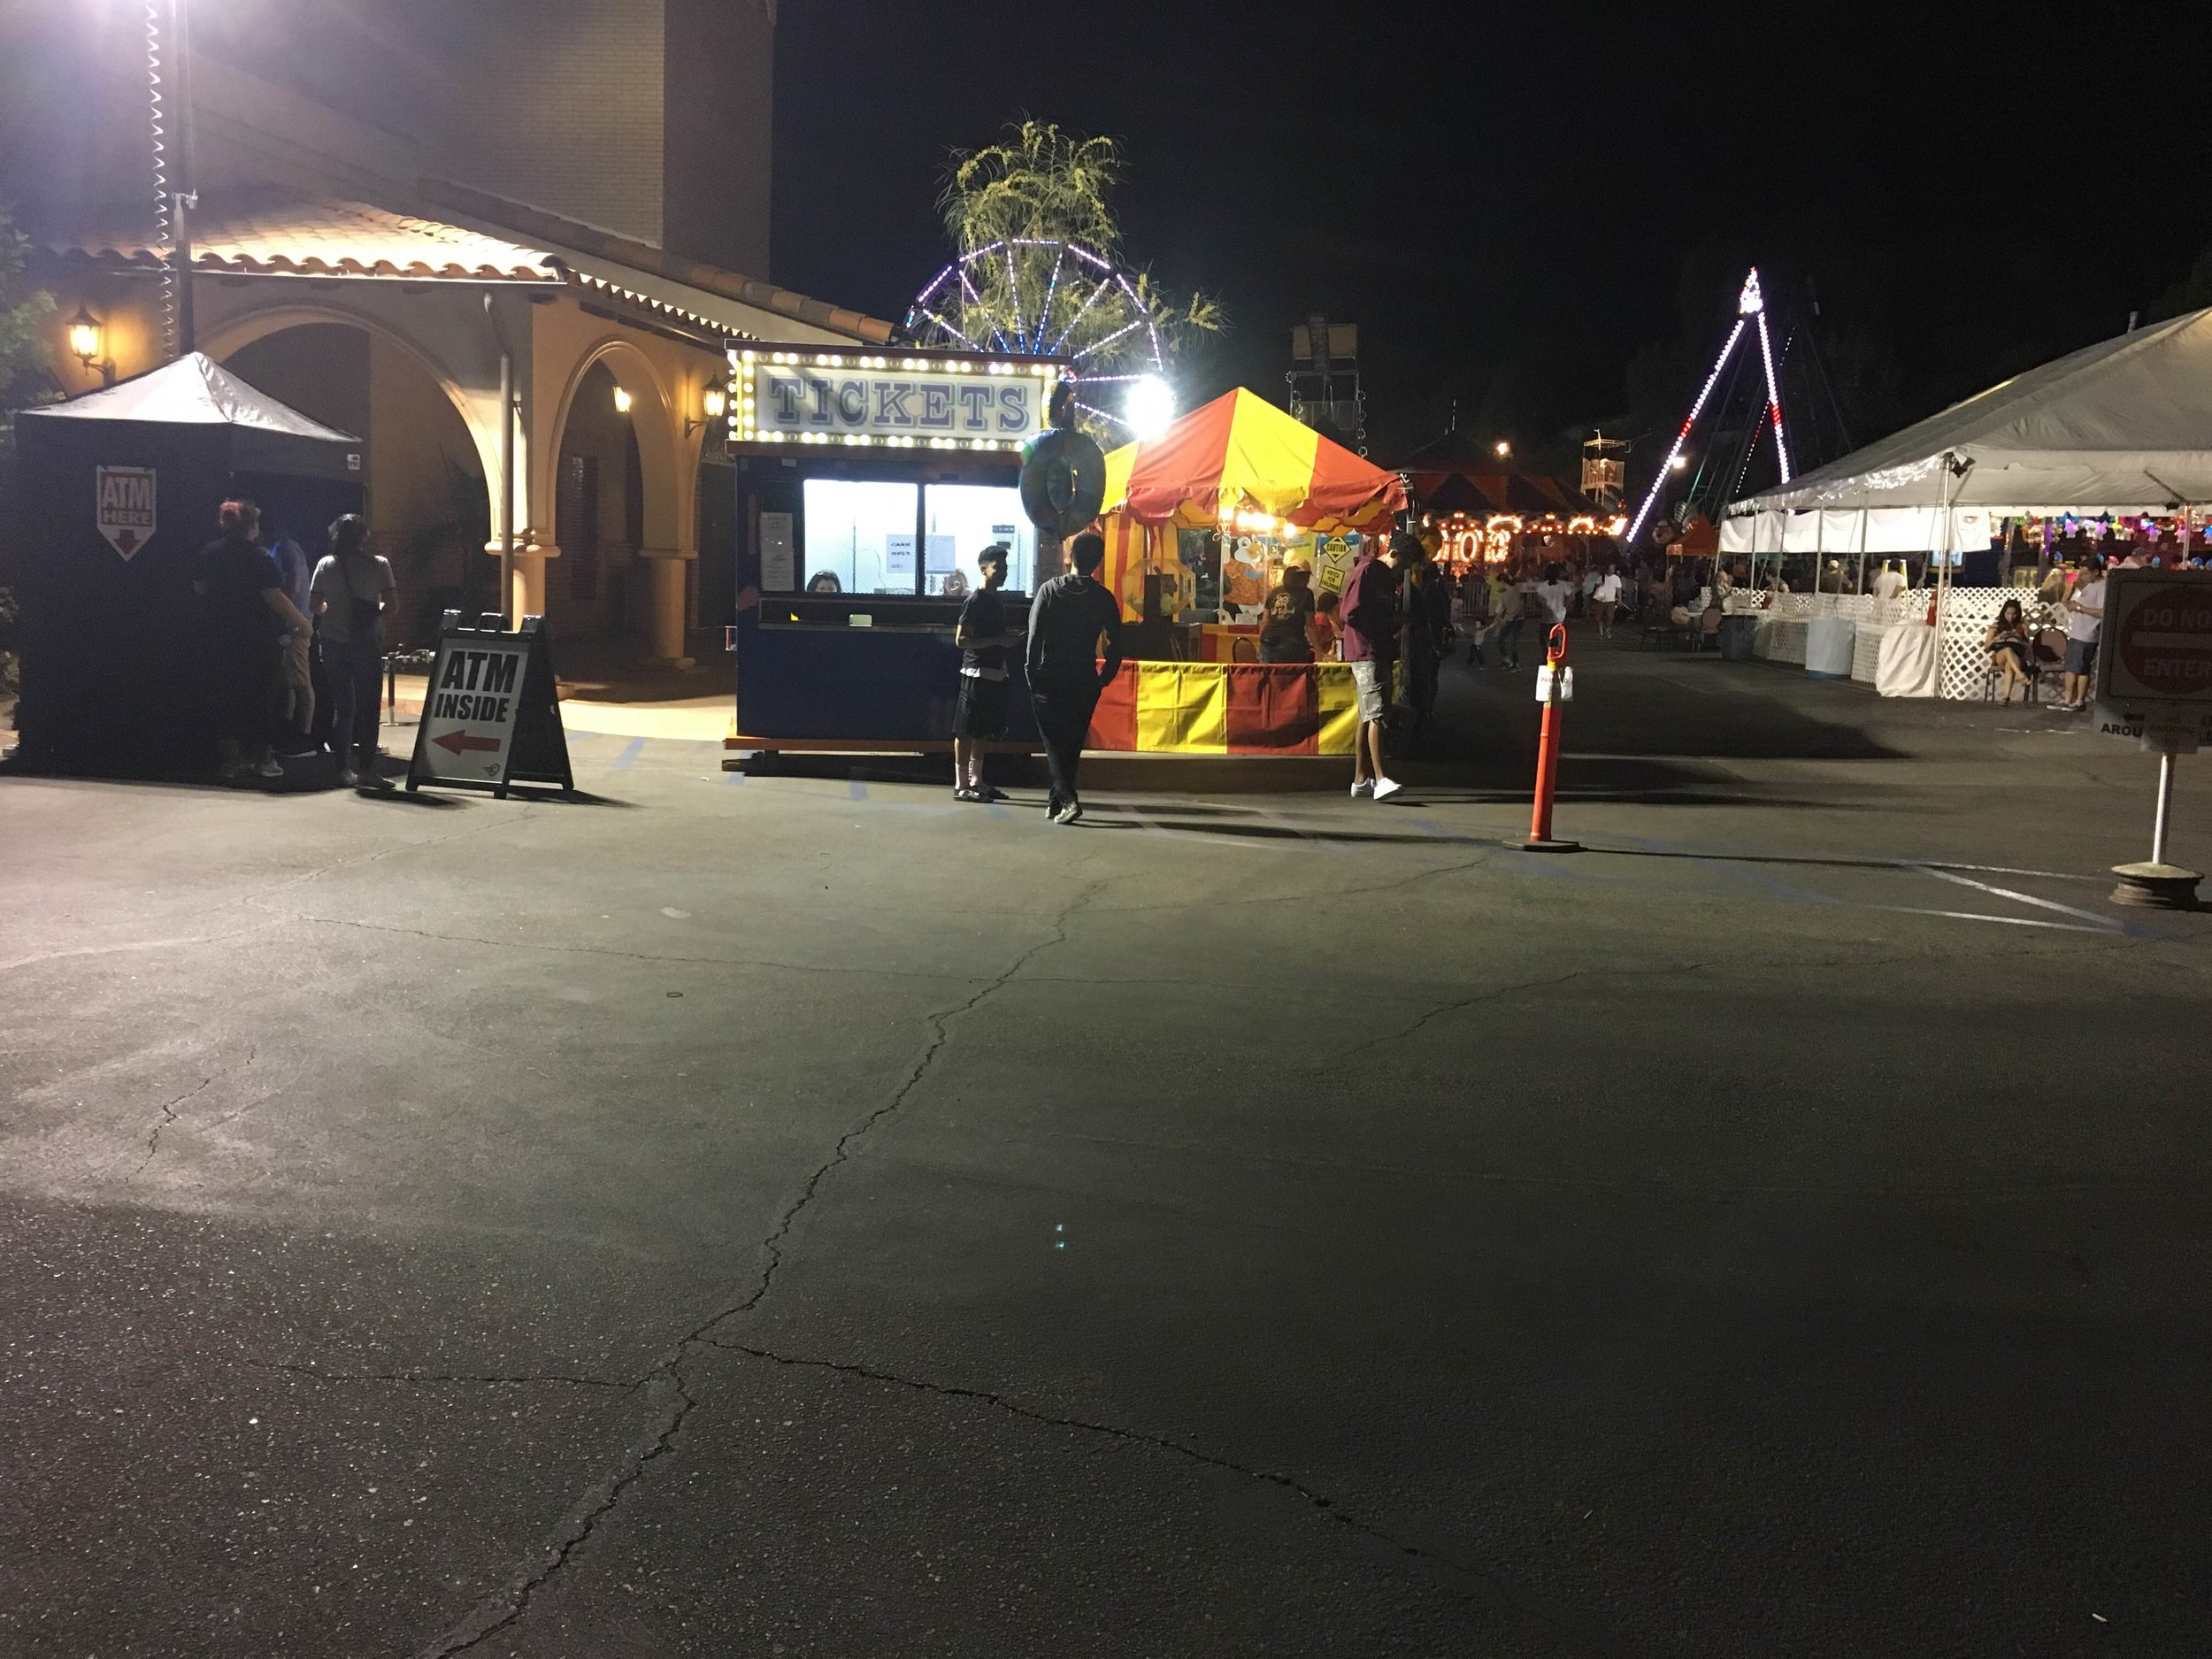 School_Fall_Festival_Woodland_Hills_California_Mobile_ATM_Rental_Company_for_School_Fairs_and_Festivals_Los_Angeles_California